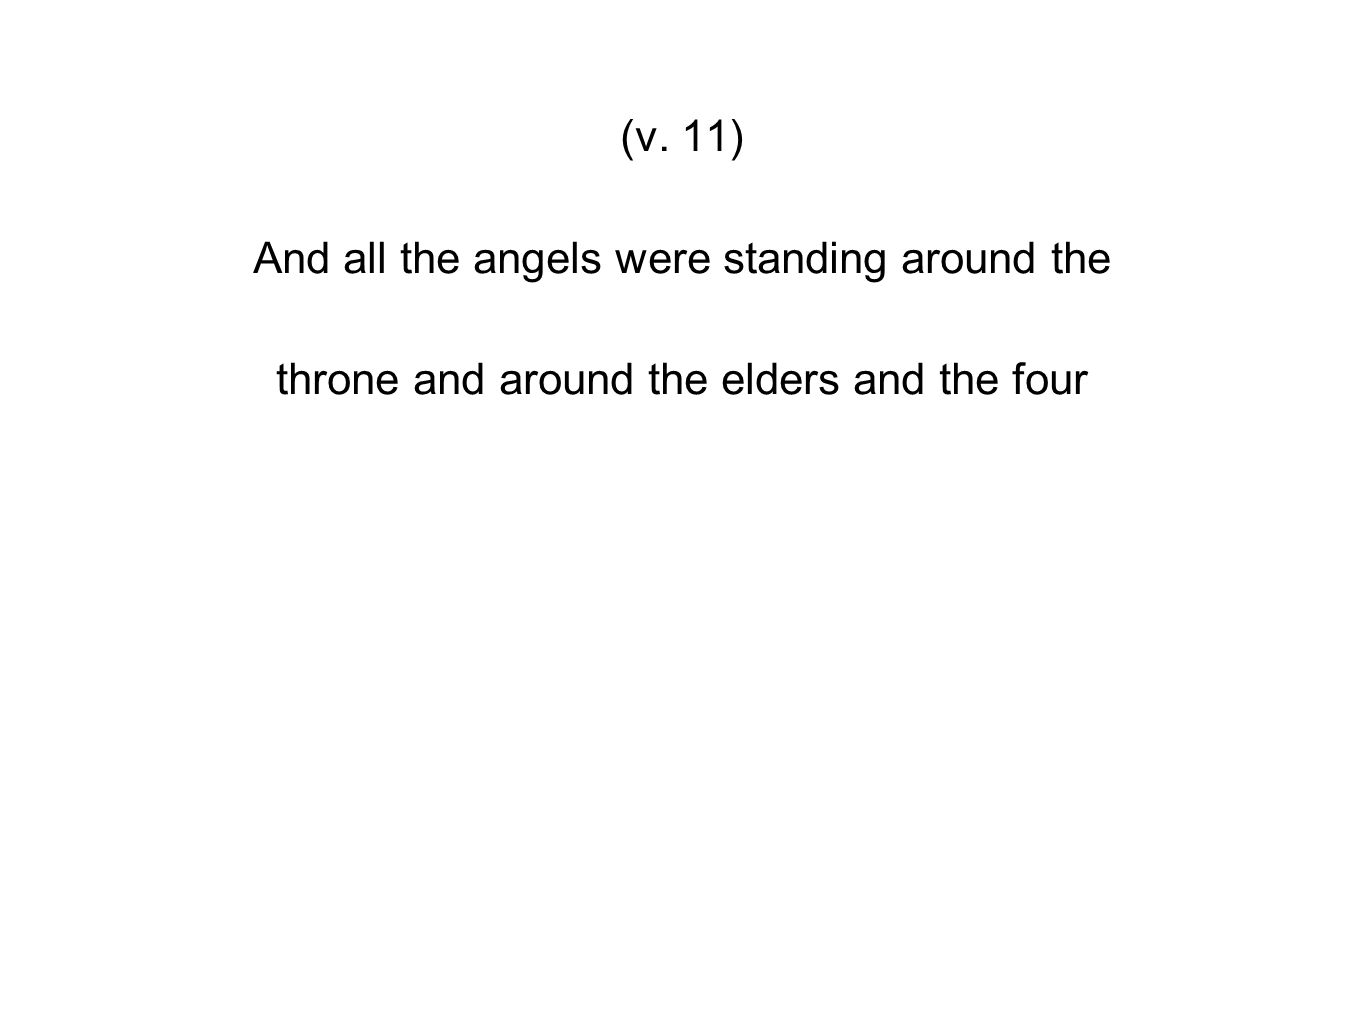 (v. 11) And all the angels were standing around the throne and around the elders and the four